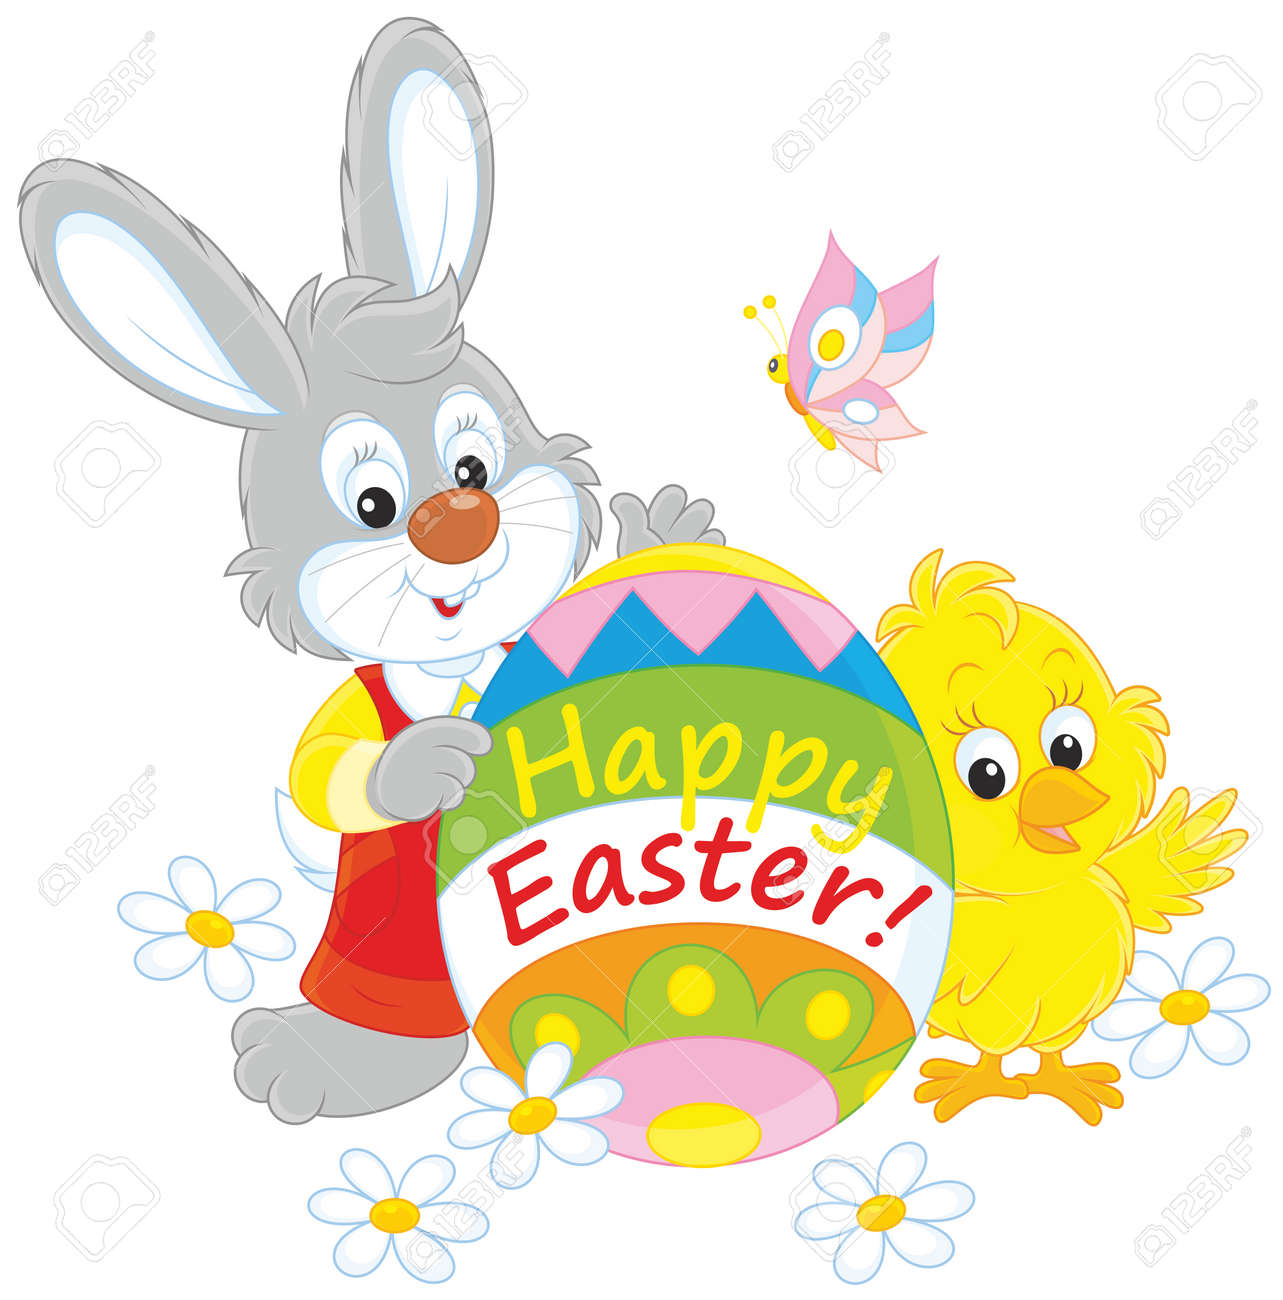 Easter Bunny and Chick - 36512095